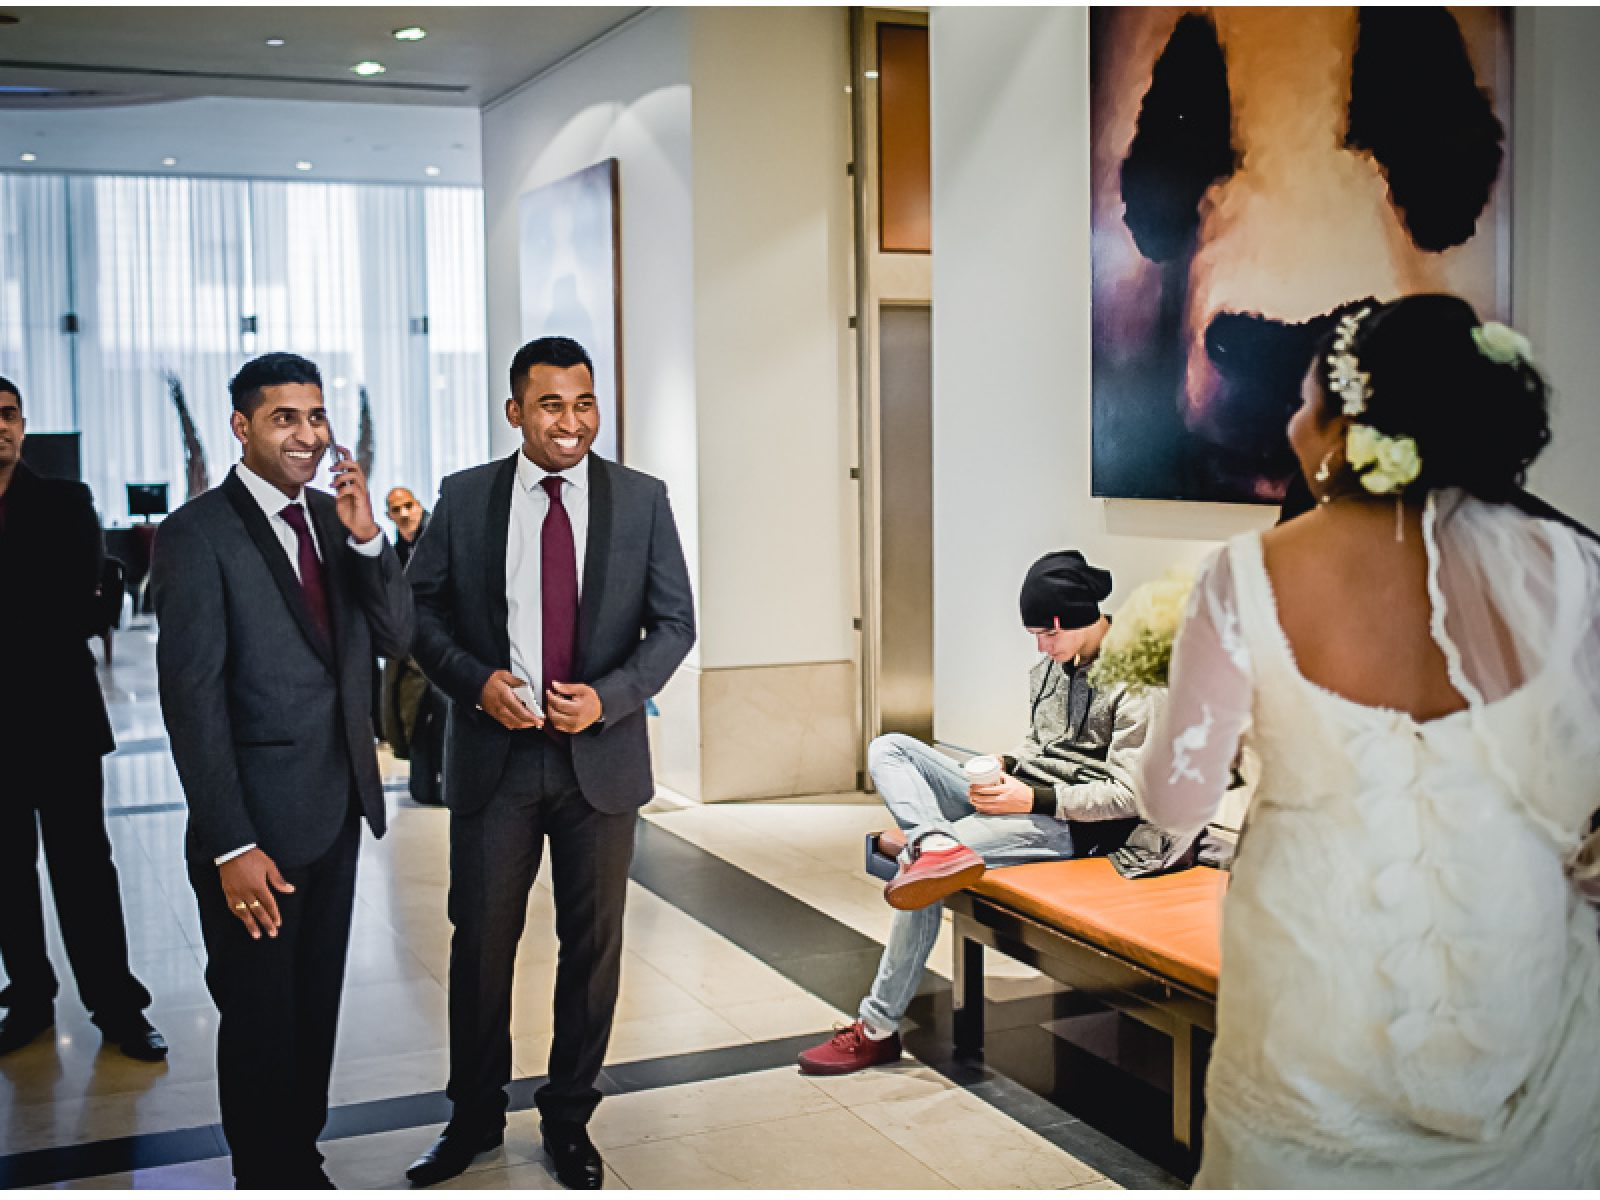 211 1600x1200 - Darshani and Anthony - wedding photographer in London